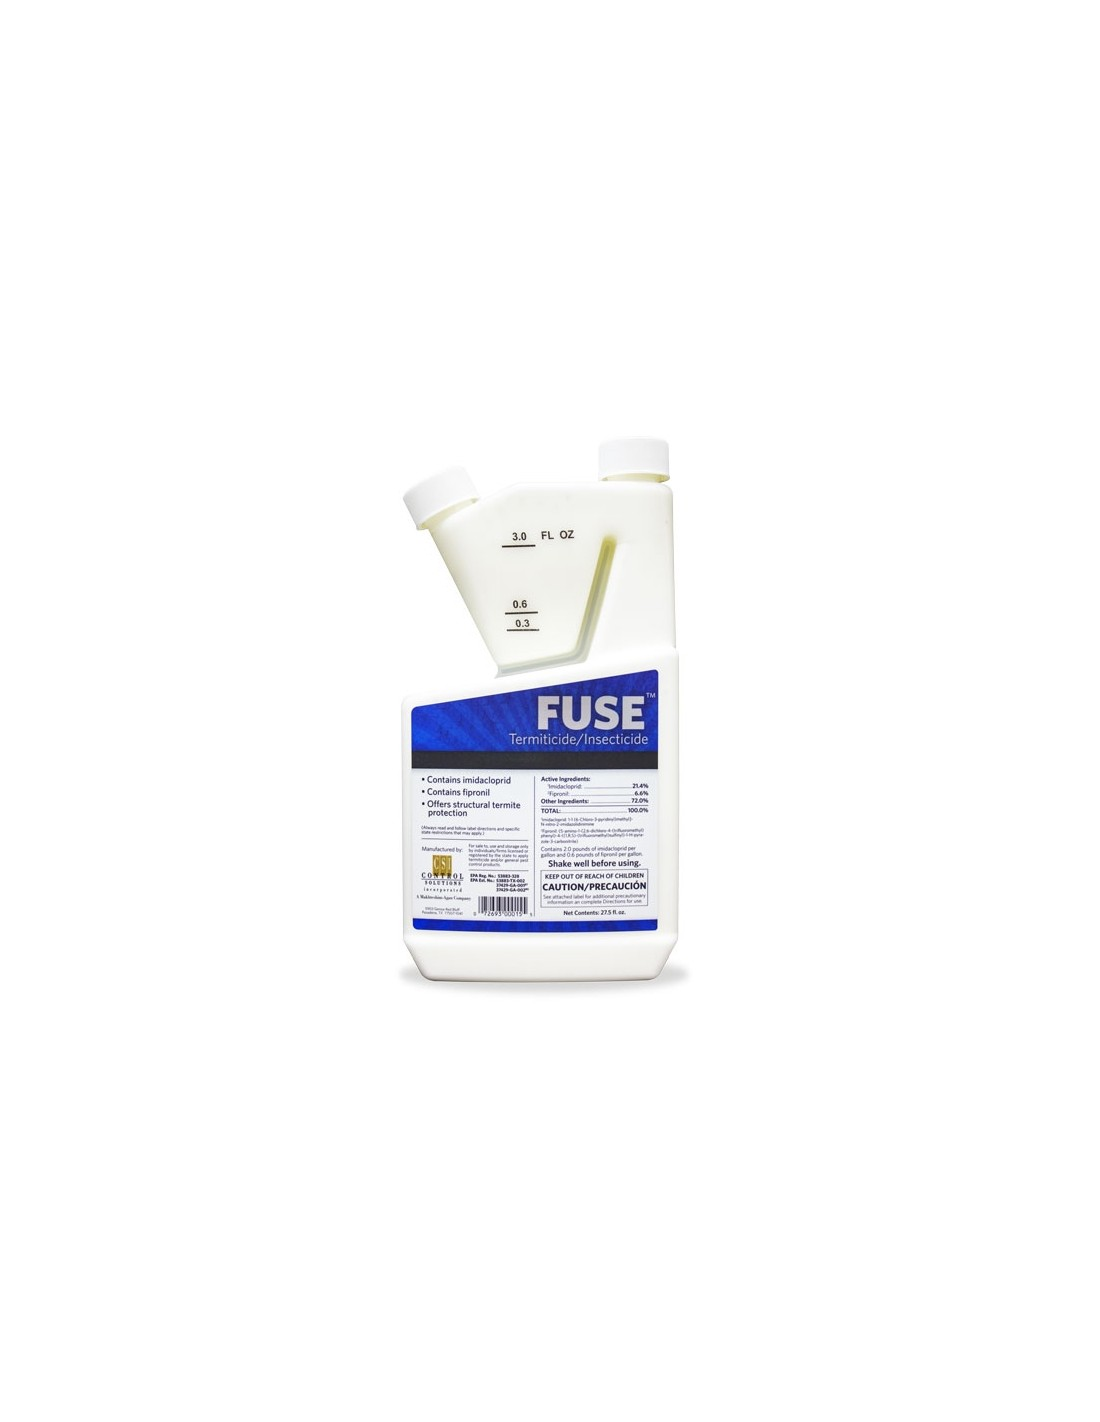 Does fuse termiticide/insecticide kill bed bugs